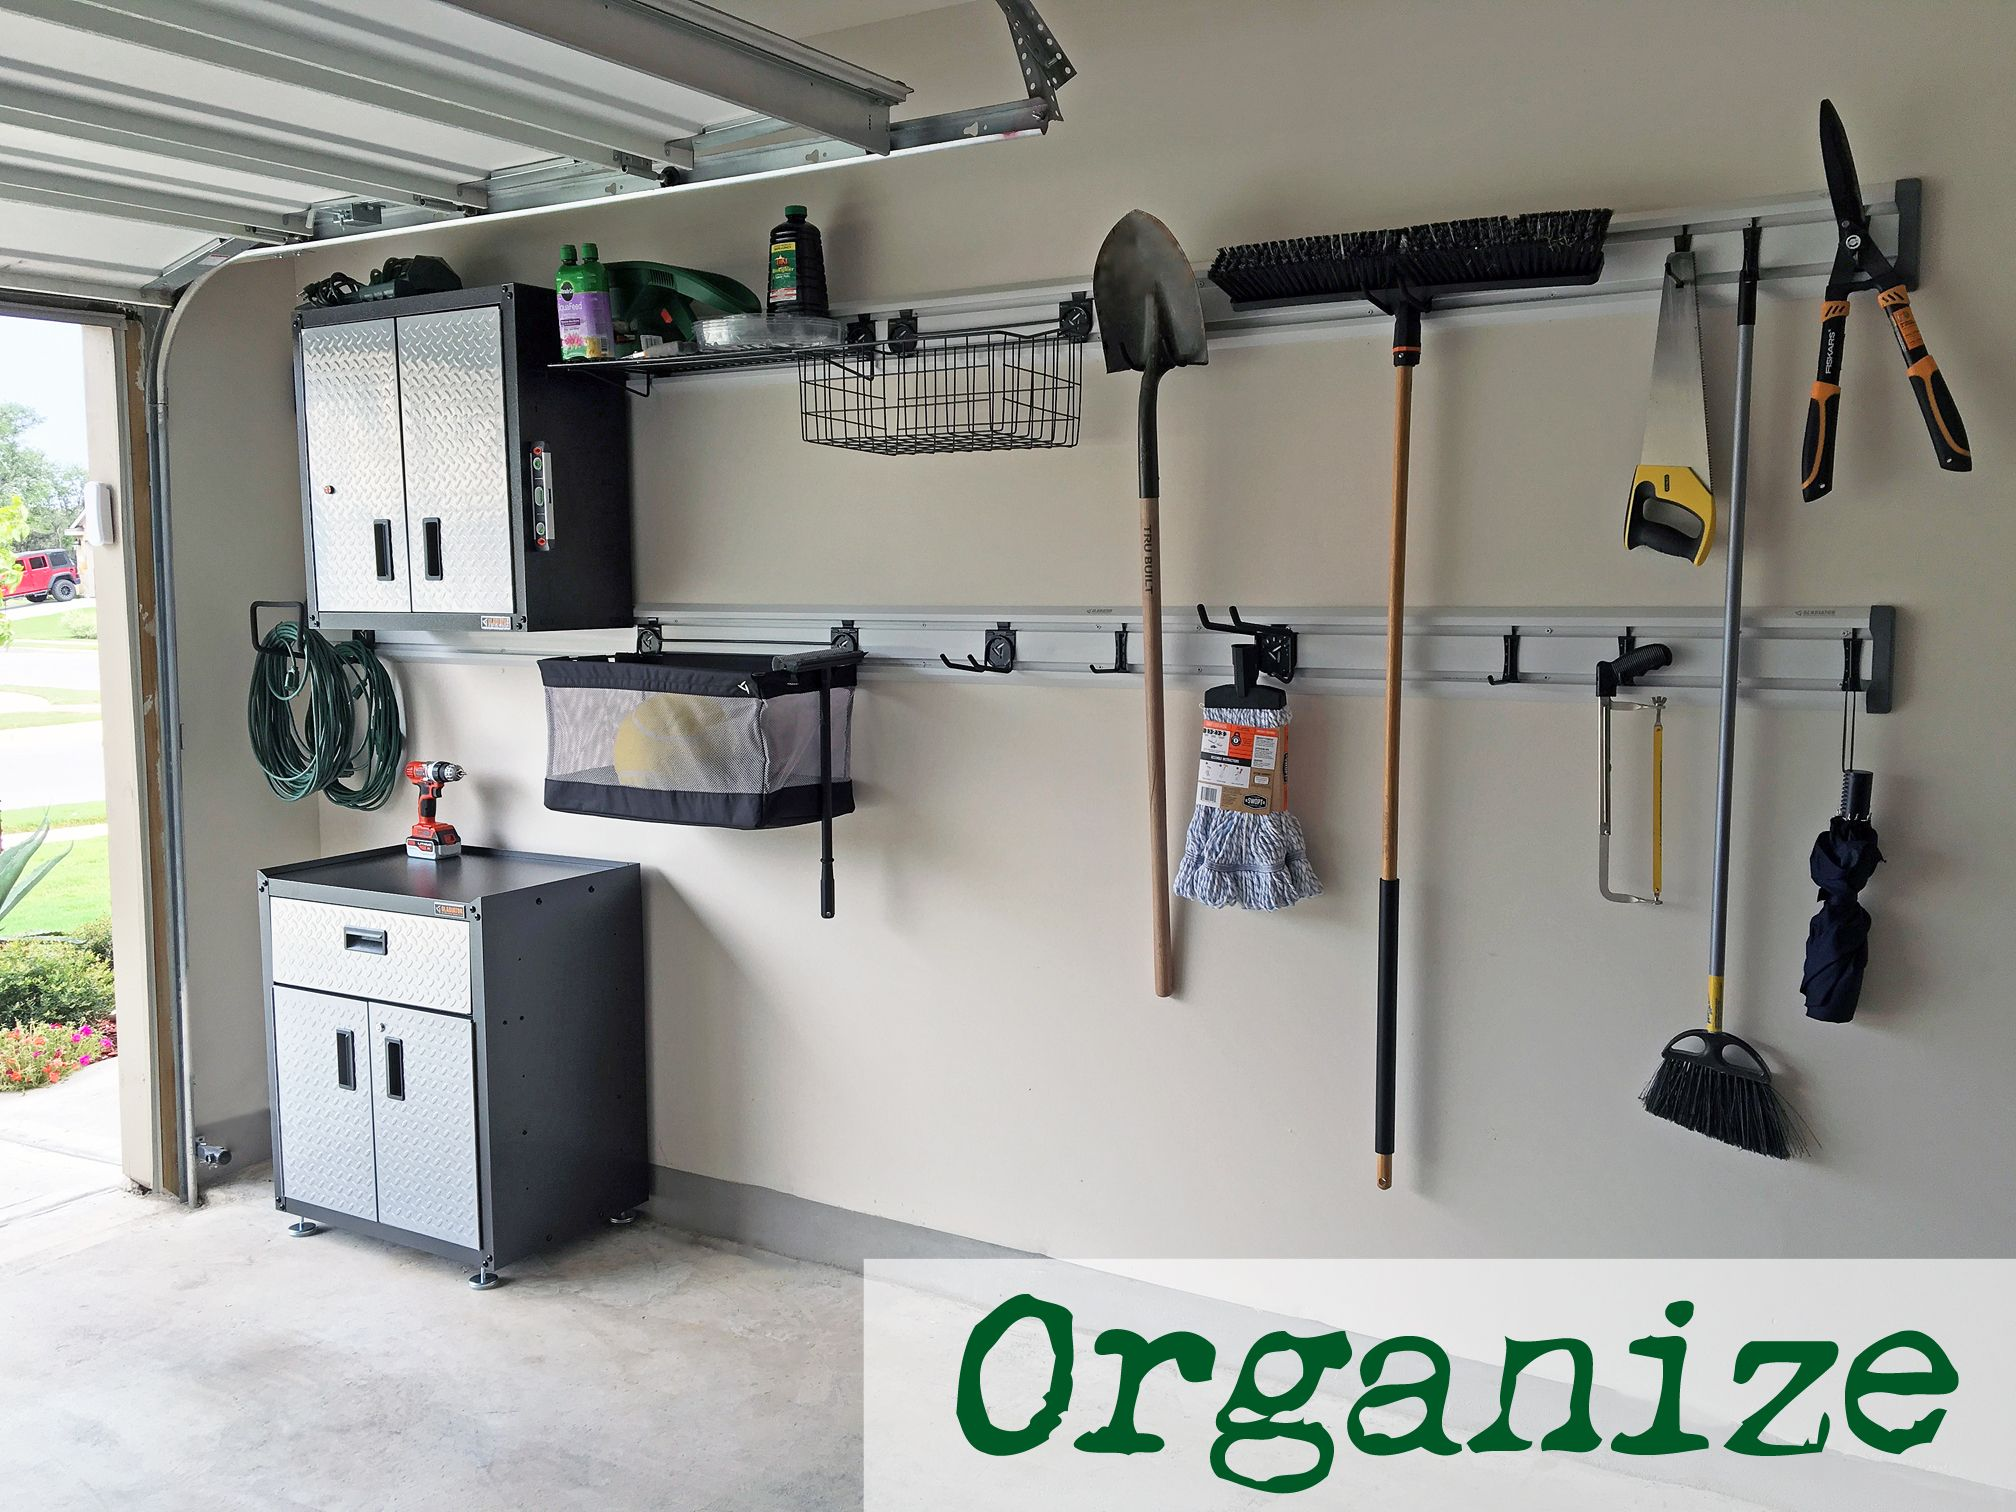 Installing Our New Gladiator Garageworks Storage System Was A Snap